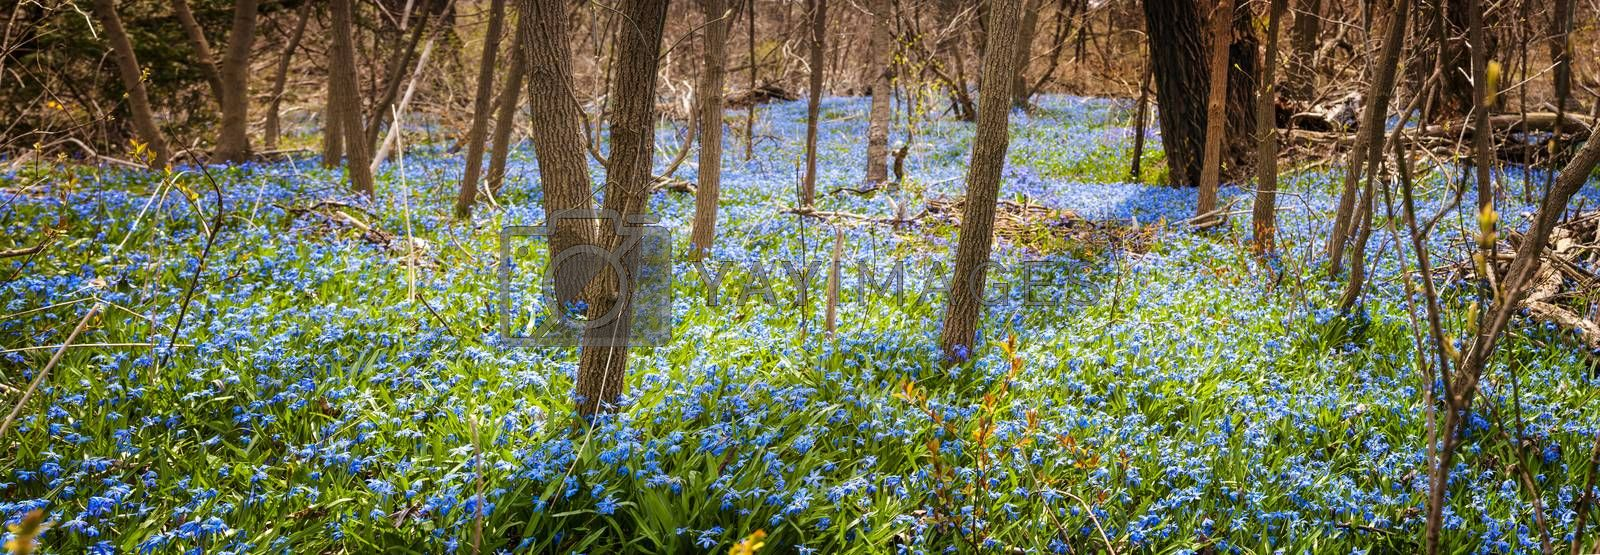 Panorama of early spring blue flowers glory-of-the-snow blooming in abundance on forest floor. Ontario, Canada.